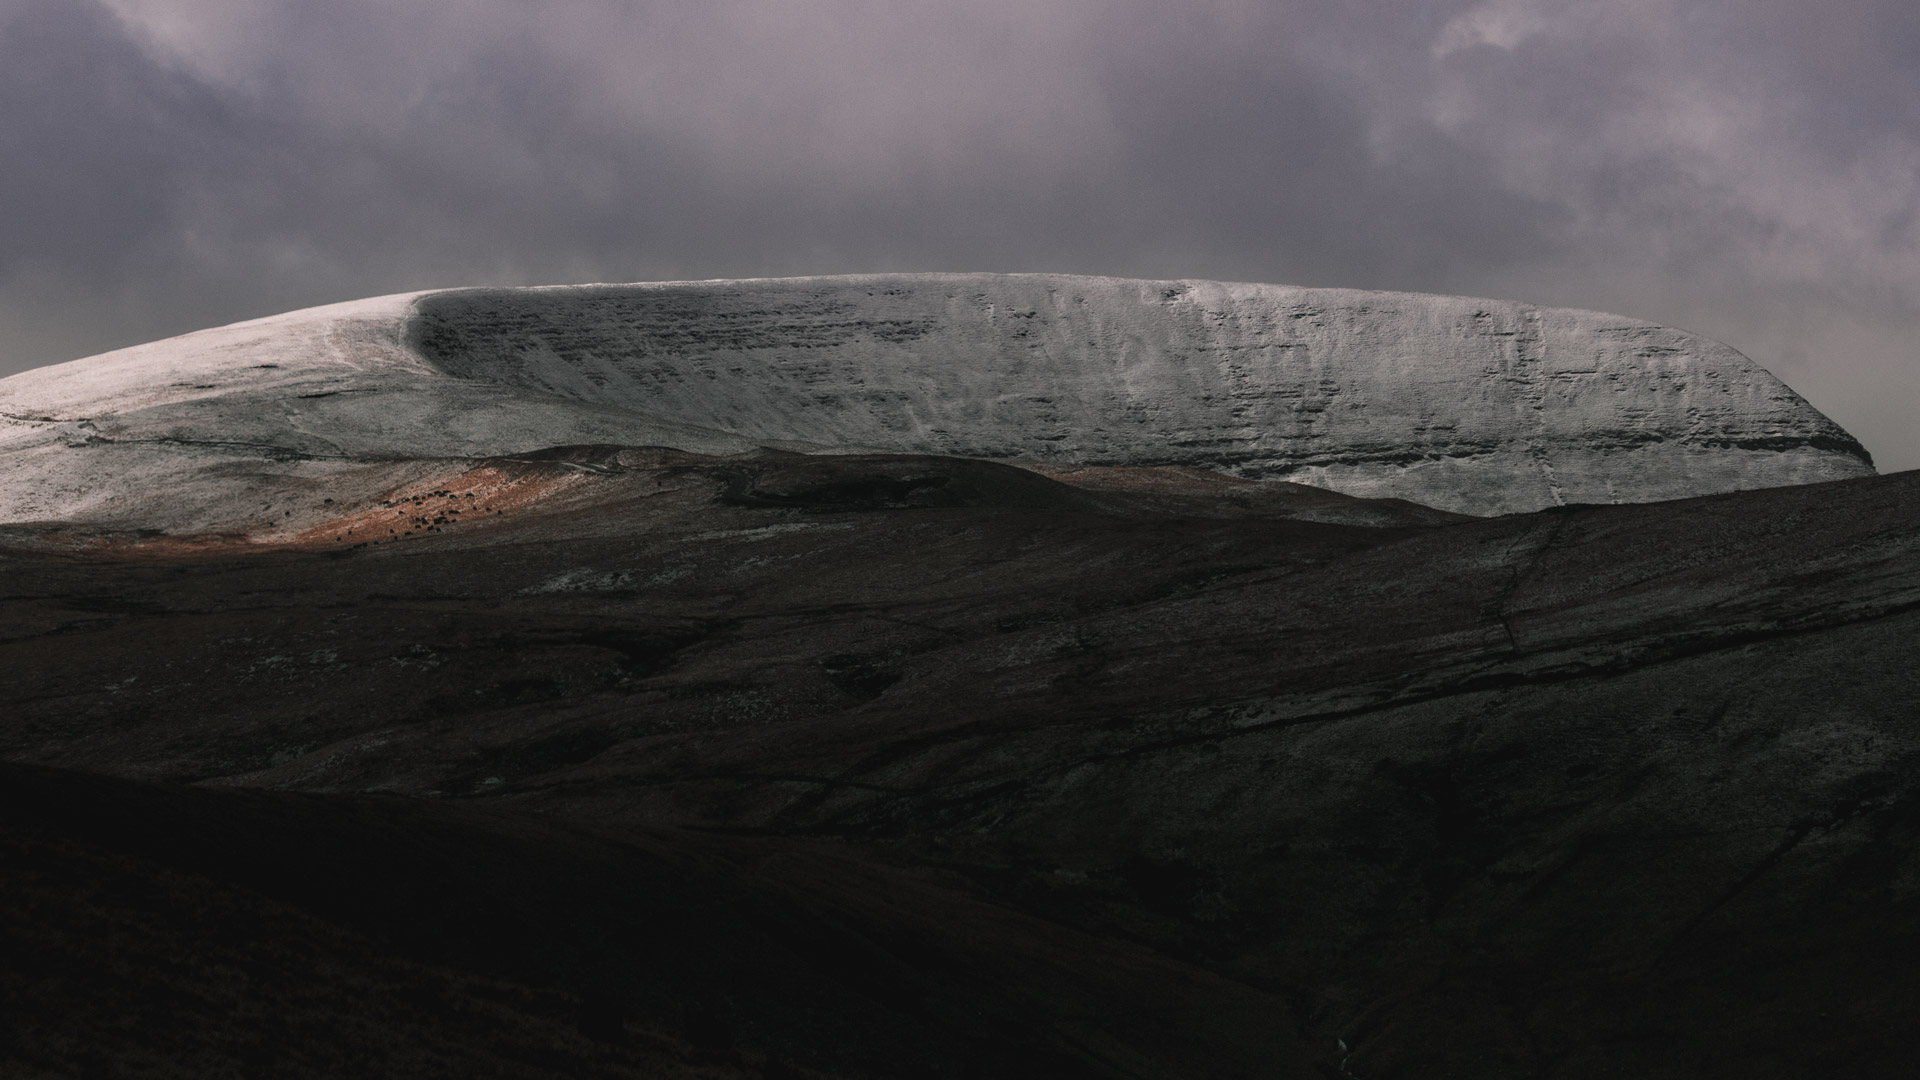 Snowy Fans (mountains) in Brecon Beacons, landscape photograph